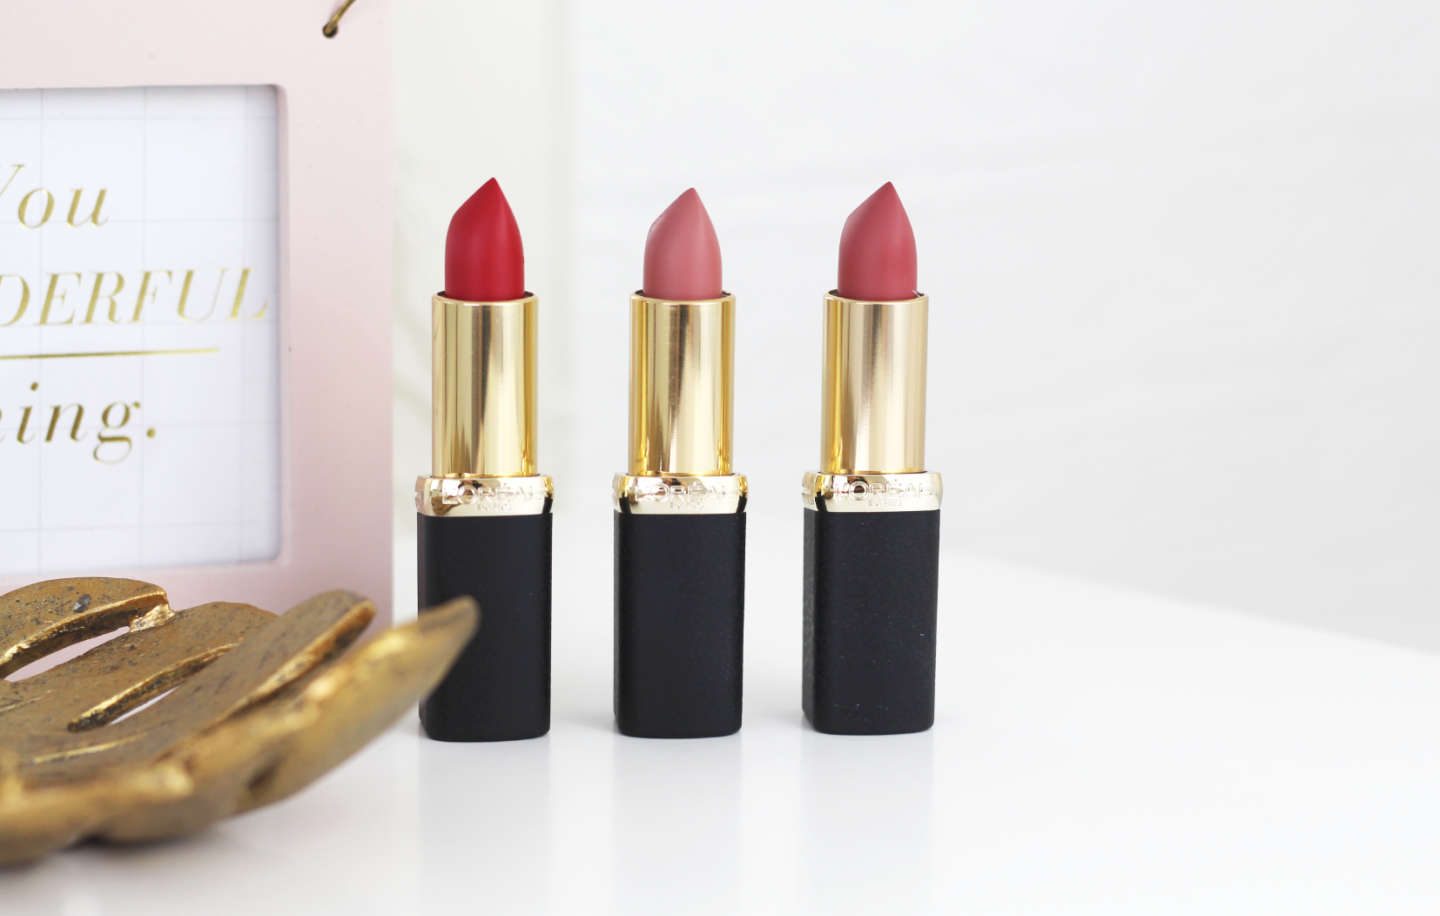 L'OREAL'S COLOR RICHE MATTE LIPSTICKS